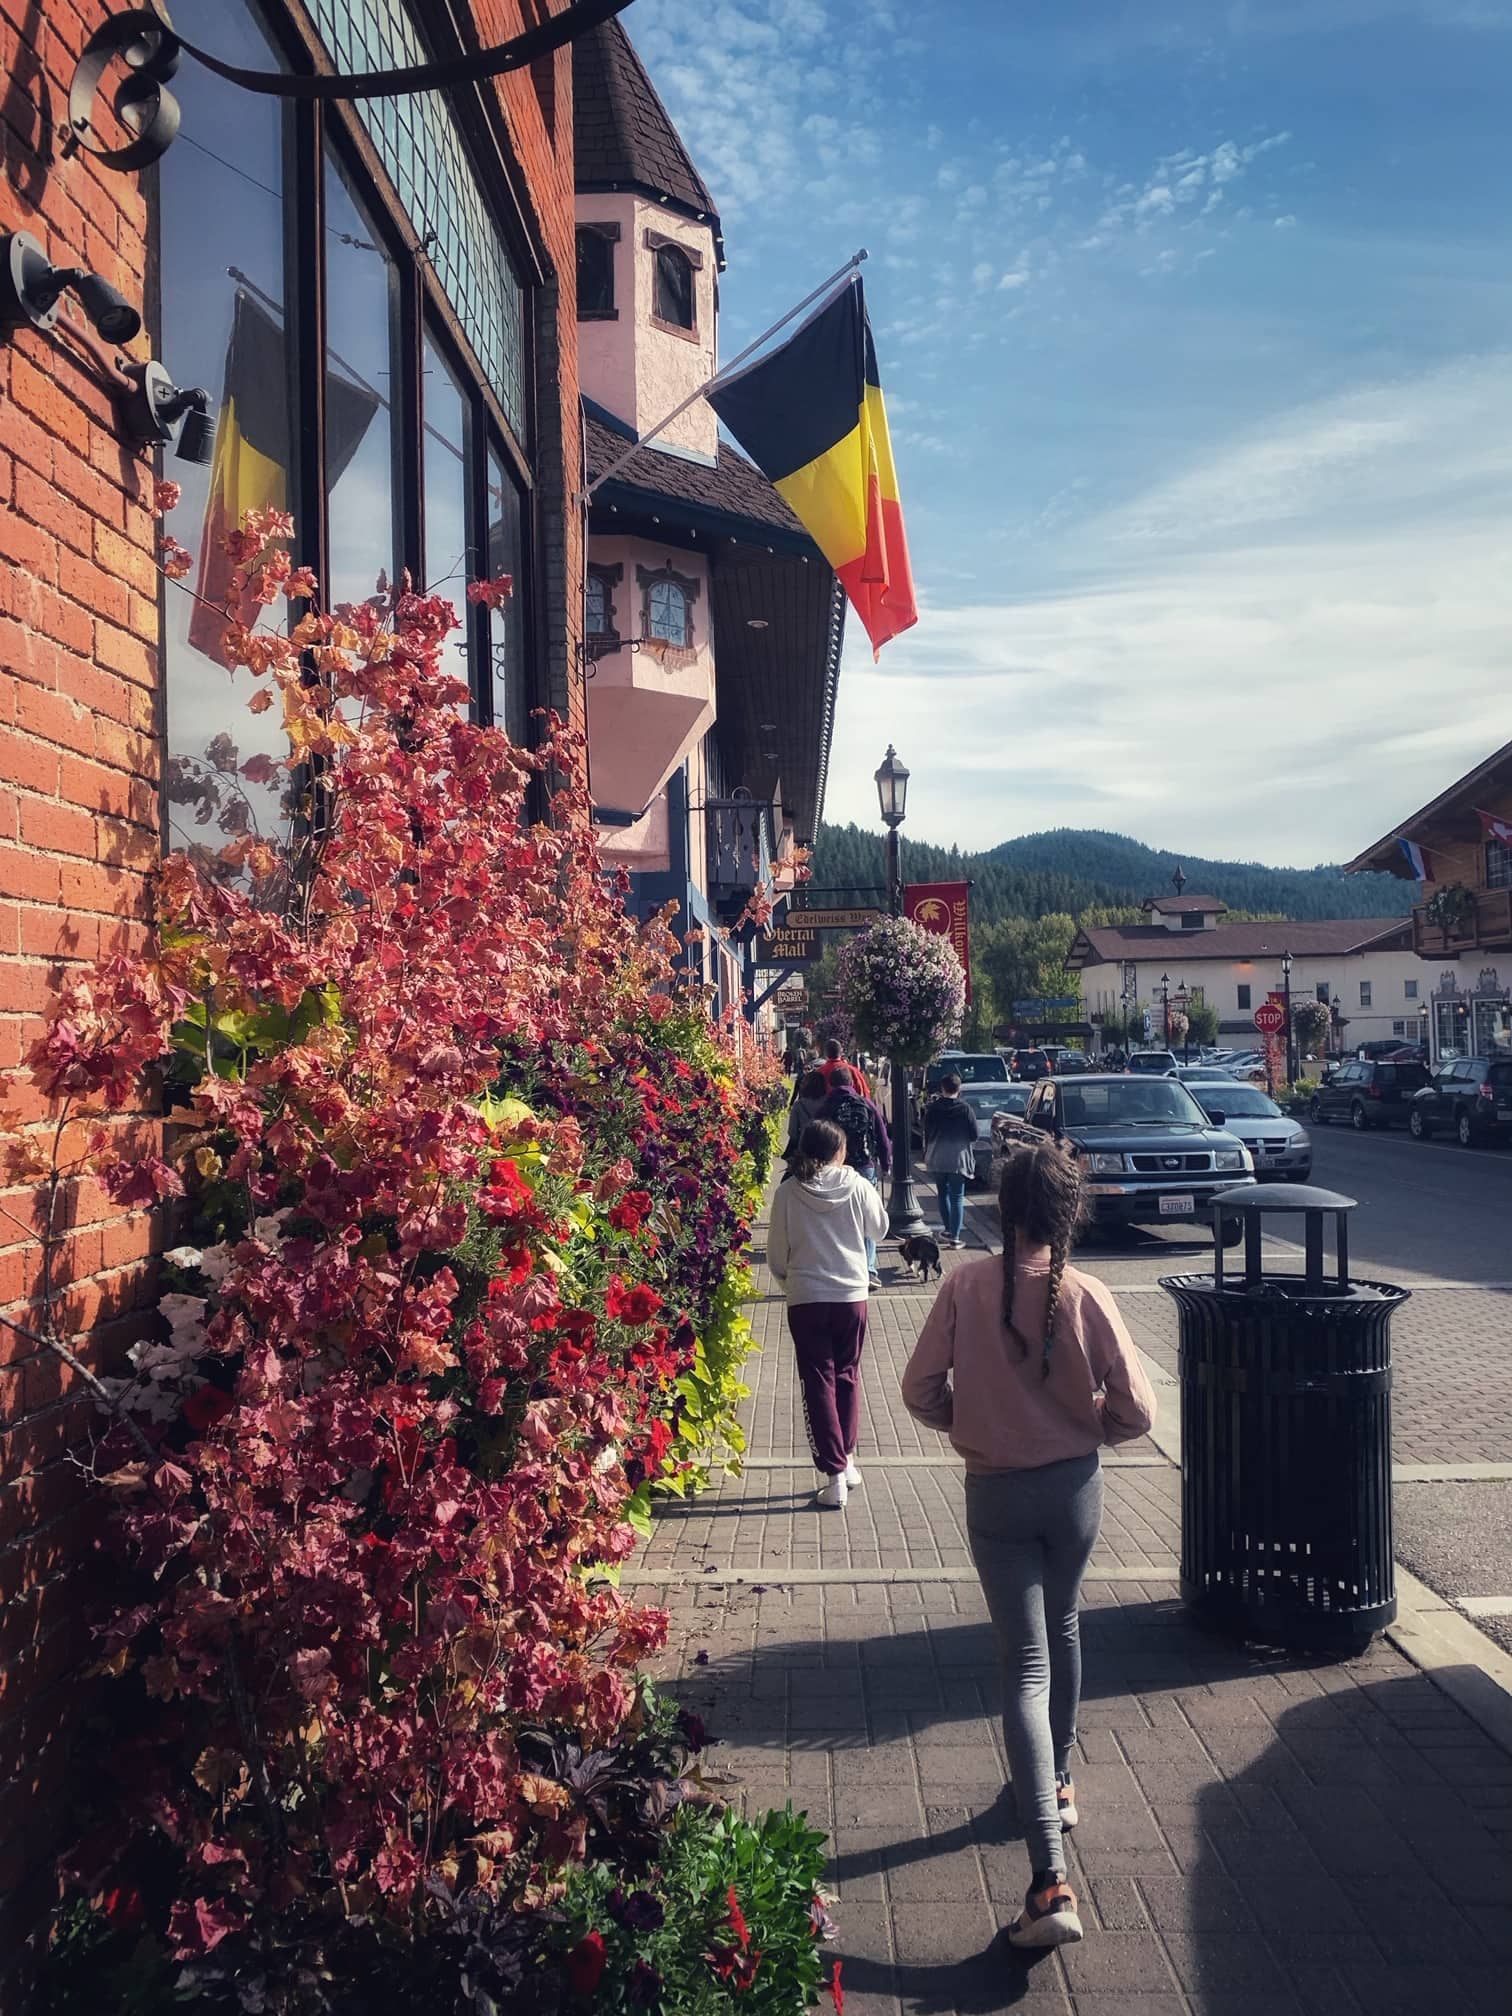 downtown leavenworth in the fall